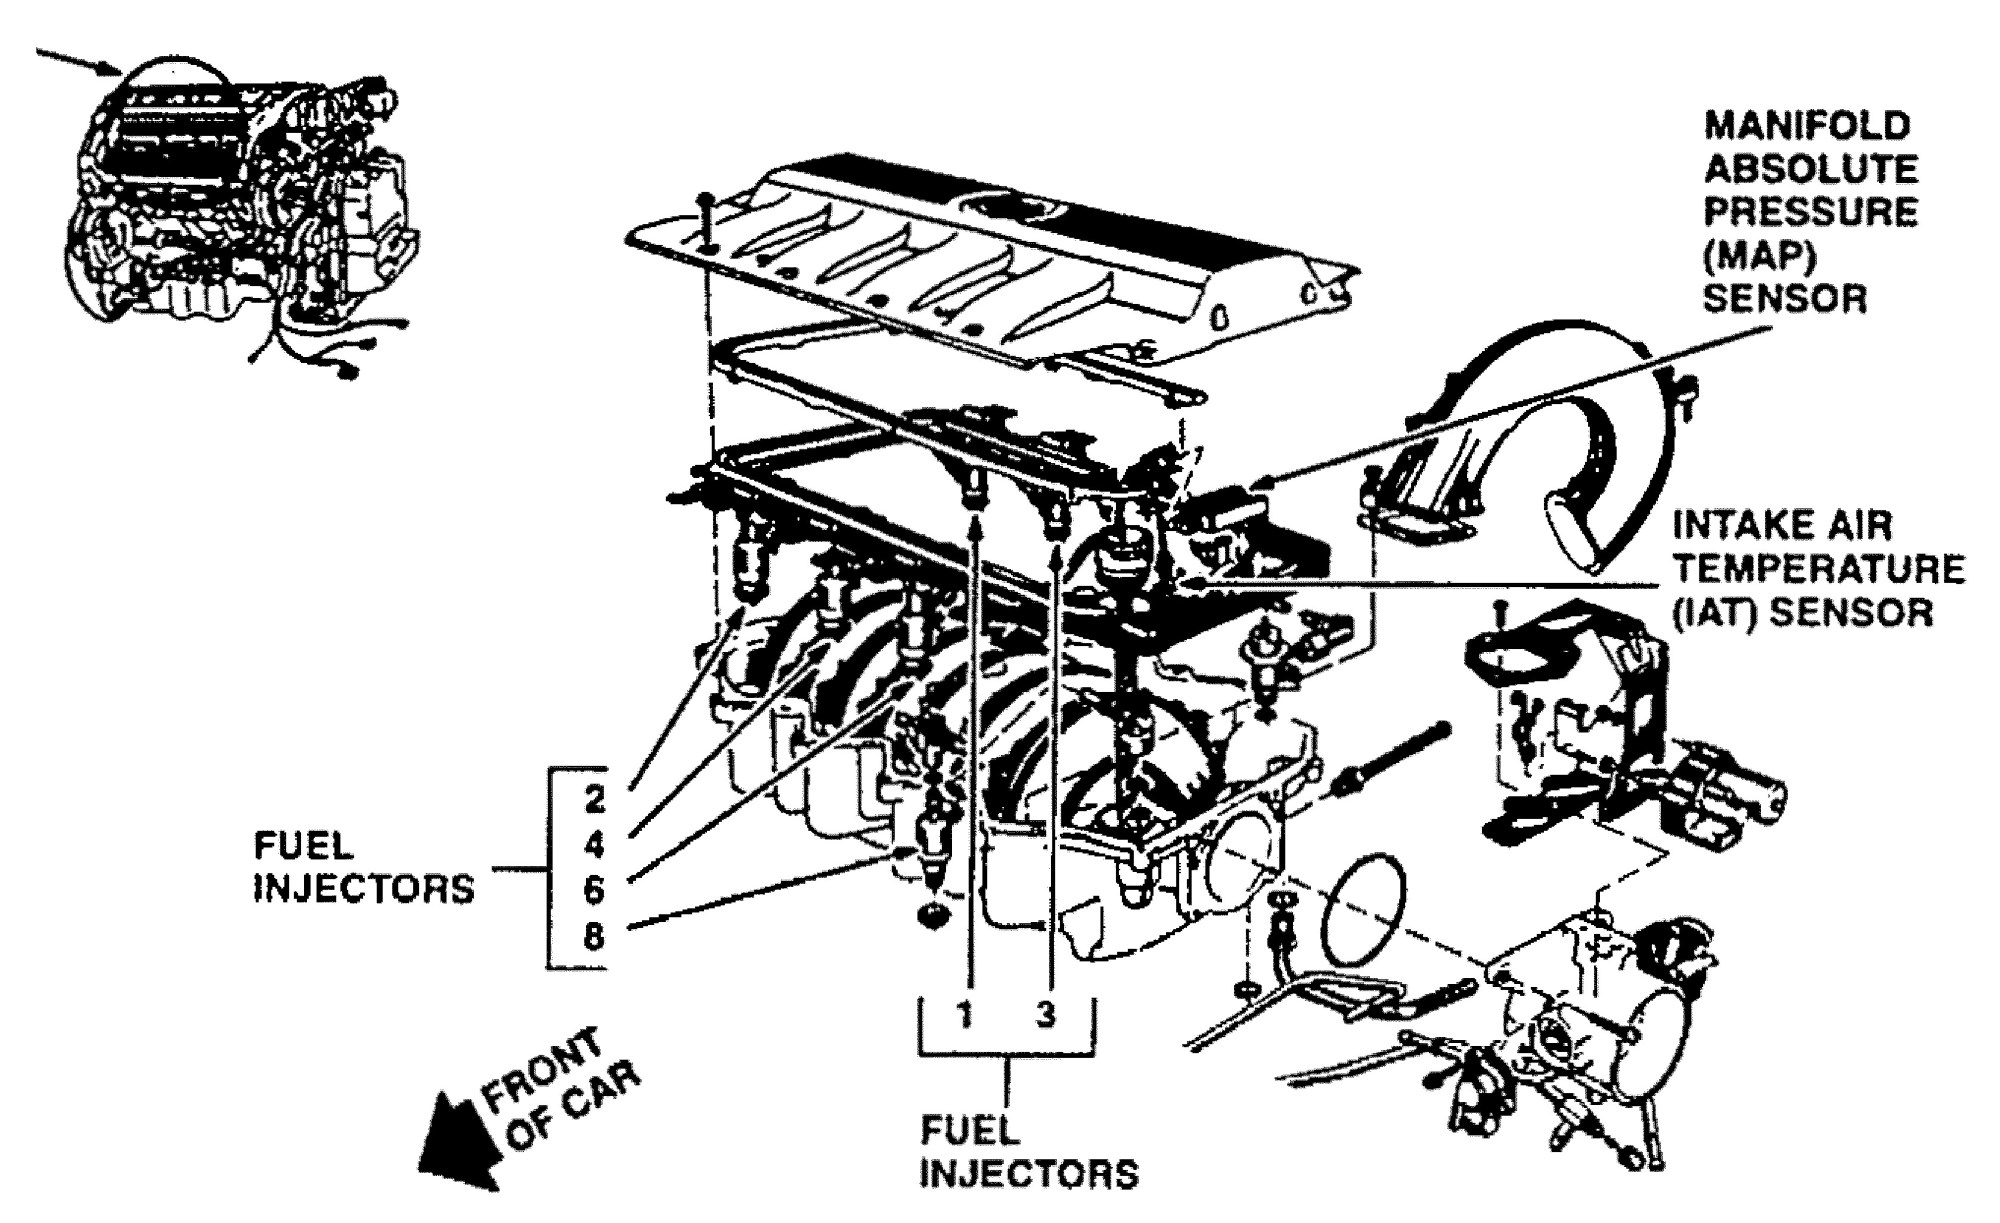 hight resolution of 4 6 northstar engine diagram a1996 cadillac deville with a north star engine v8 4 6